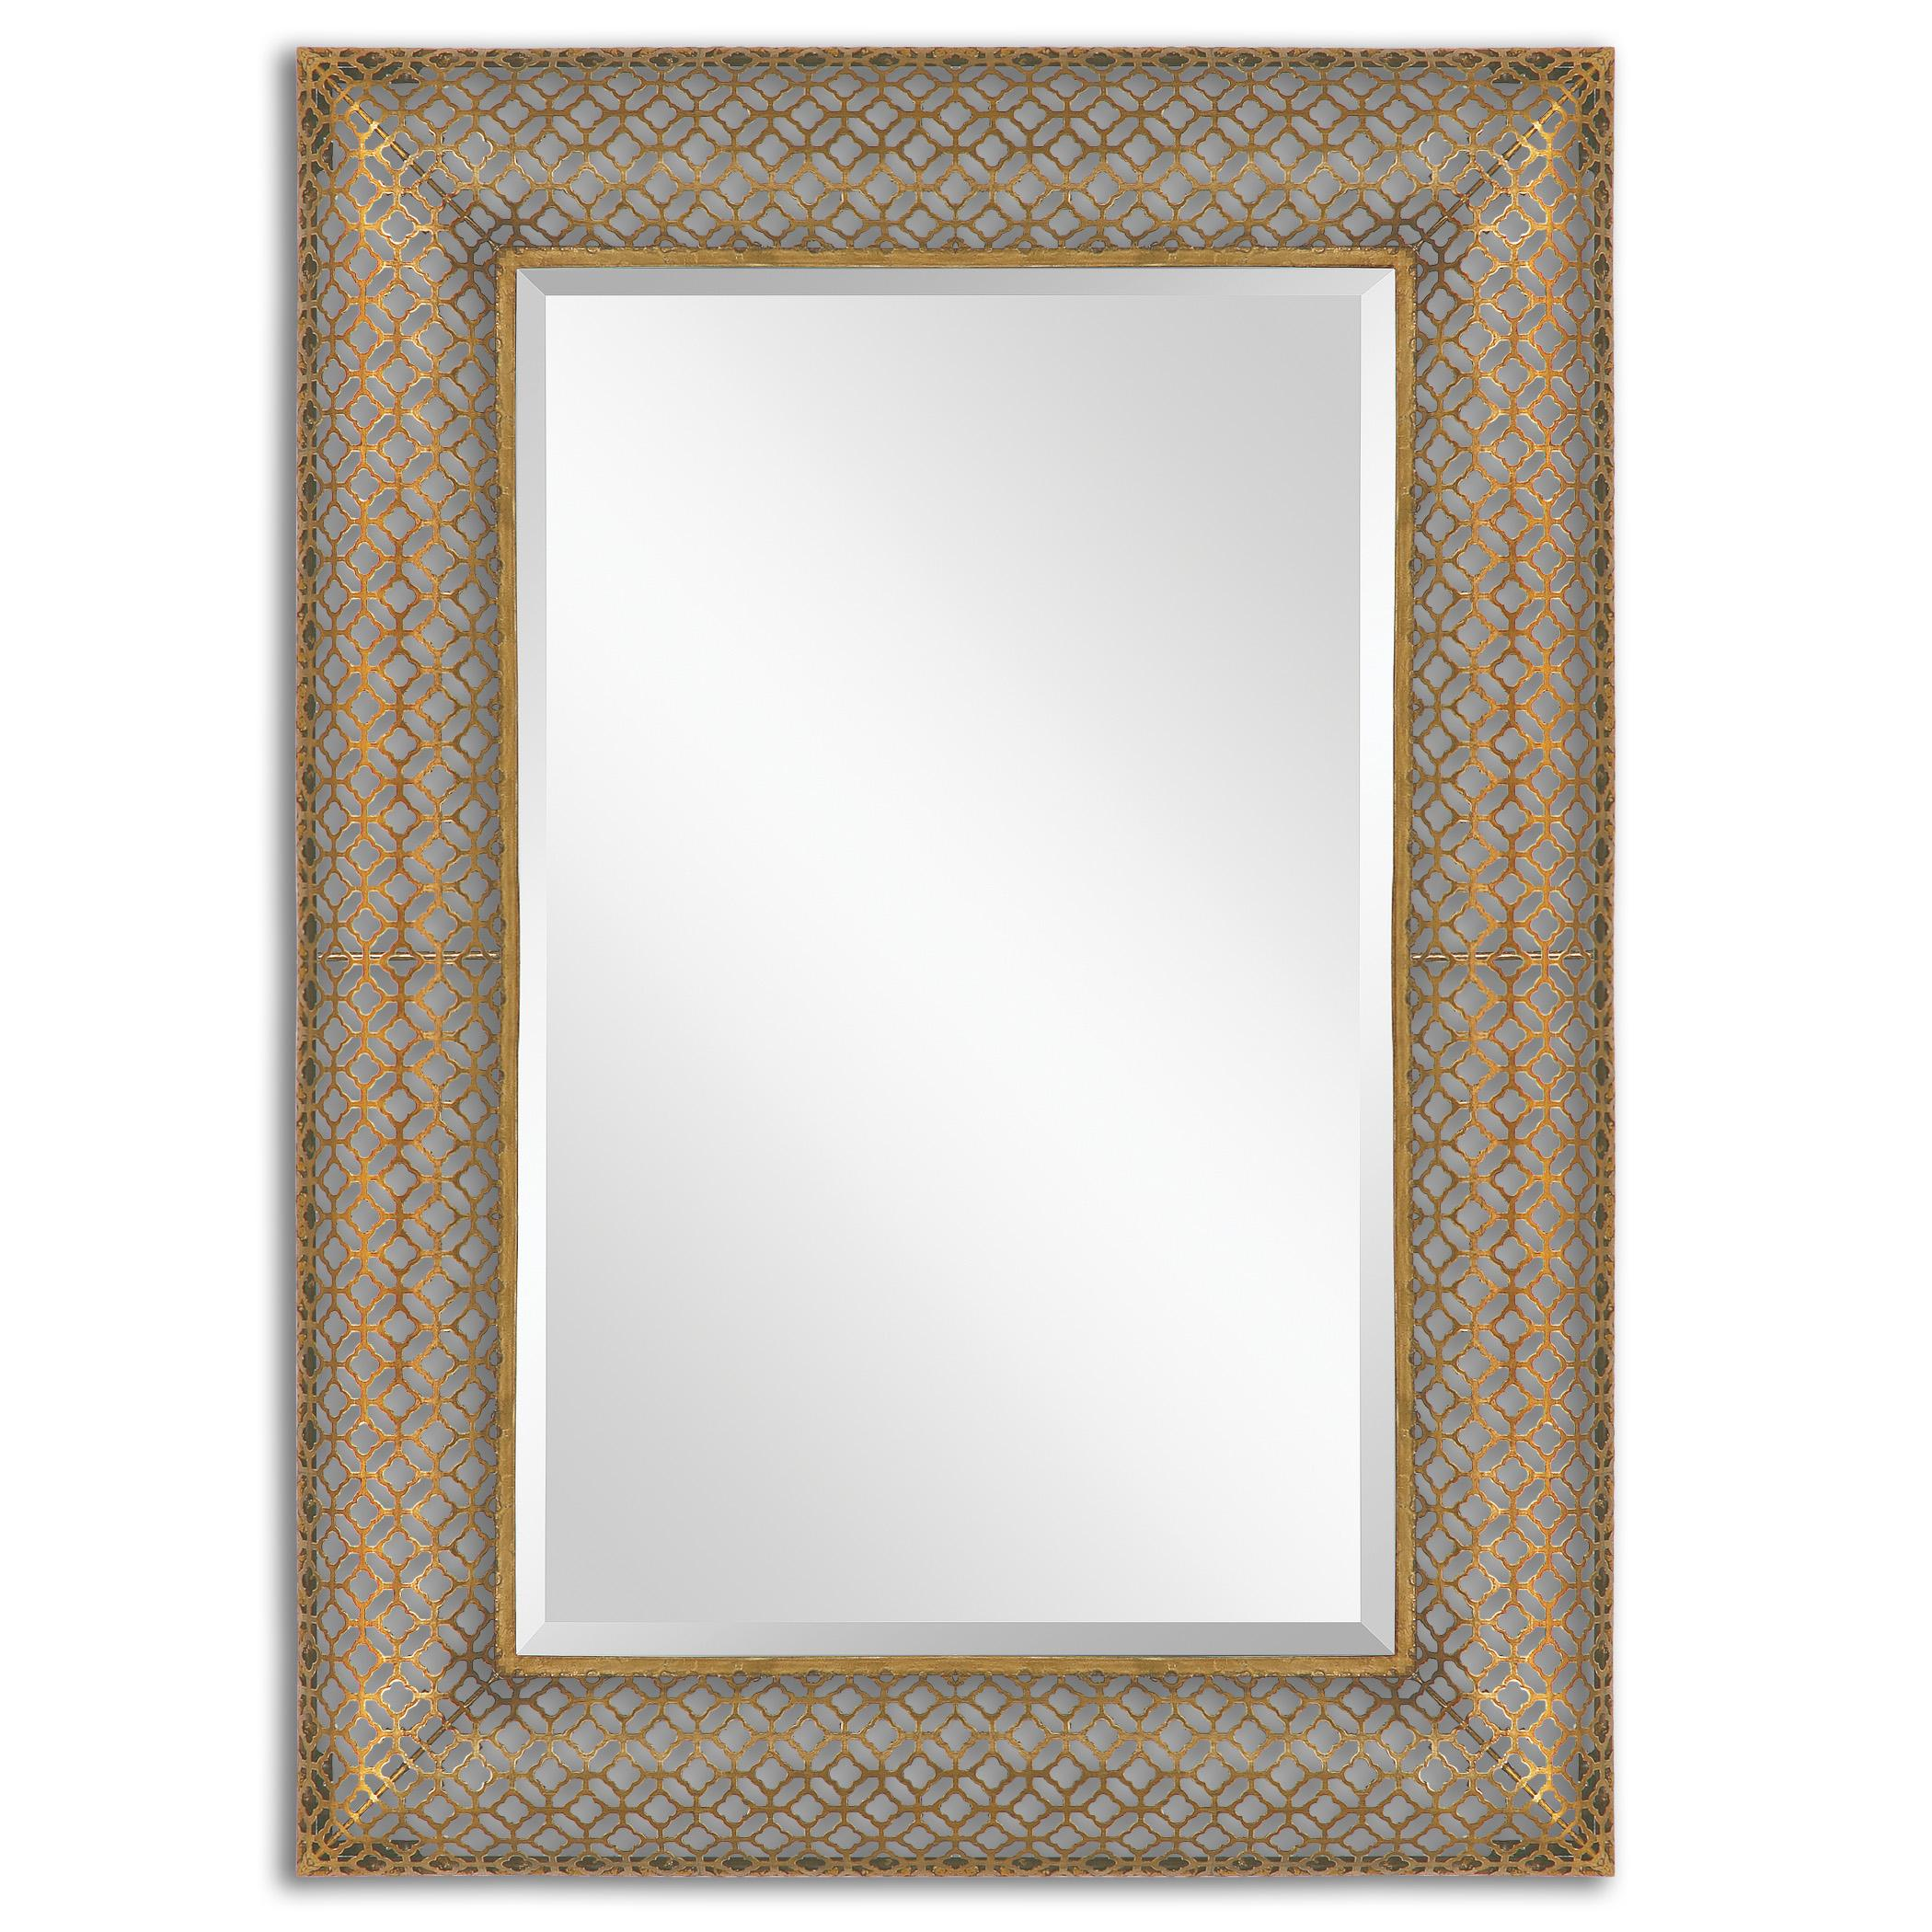 Uttermost Mirrors Ariston Stamped Metal Mirror - Item Number: 13871